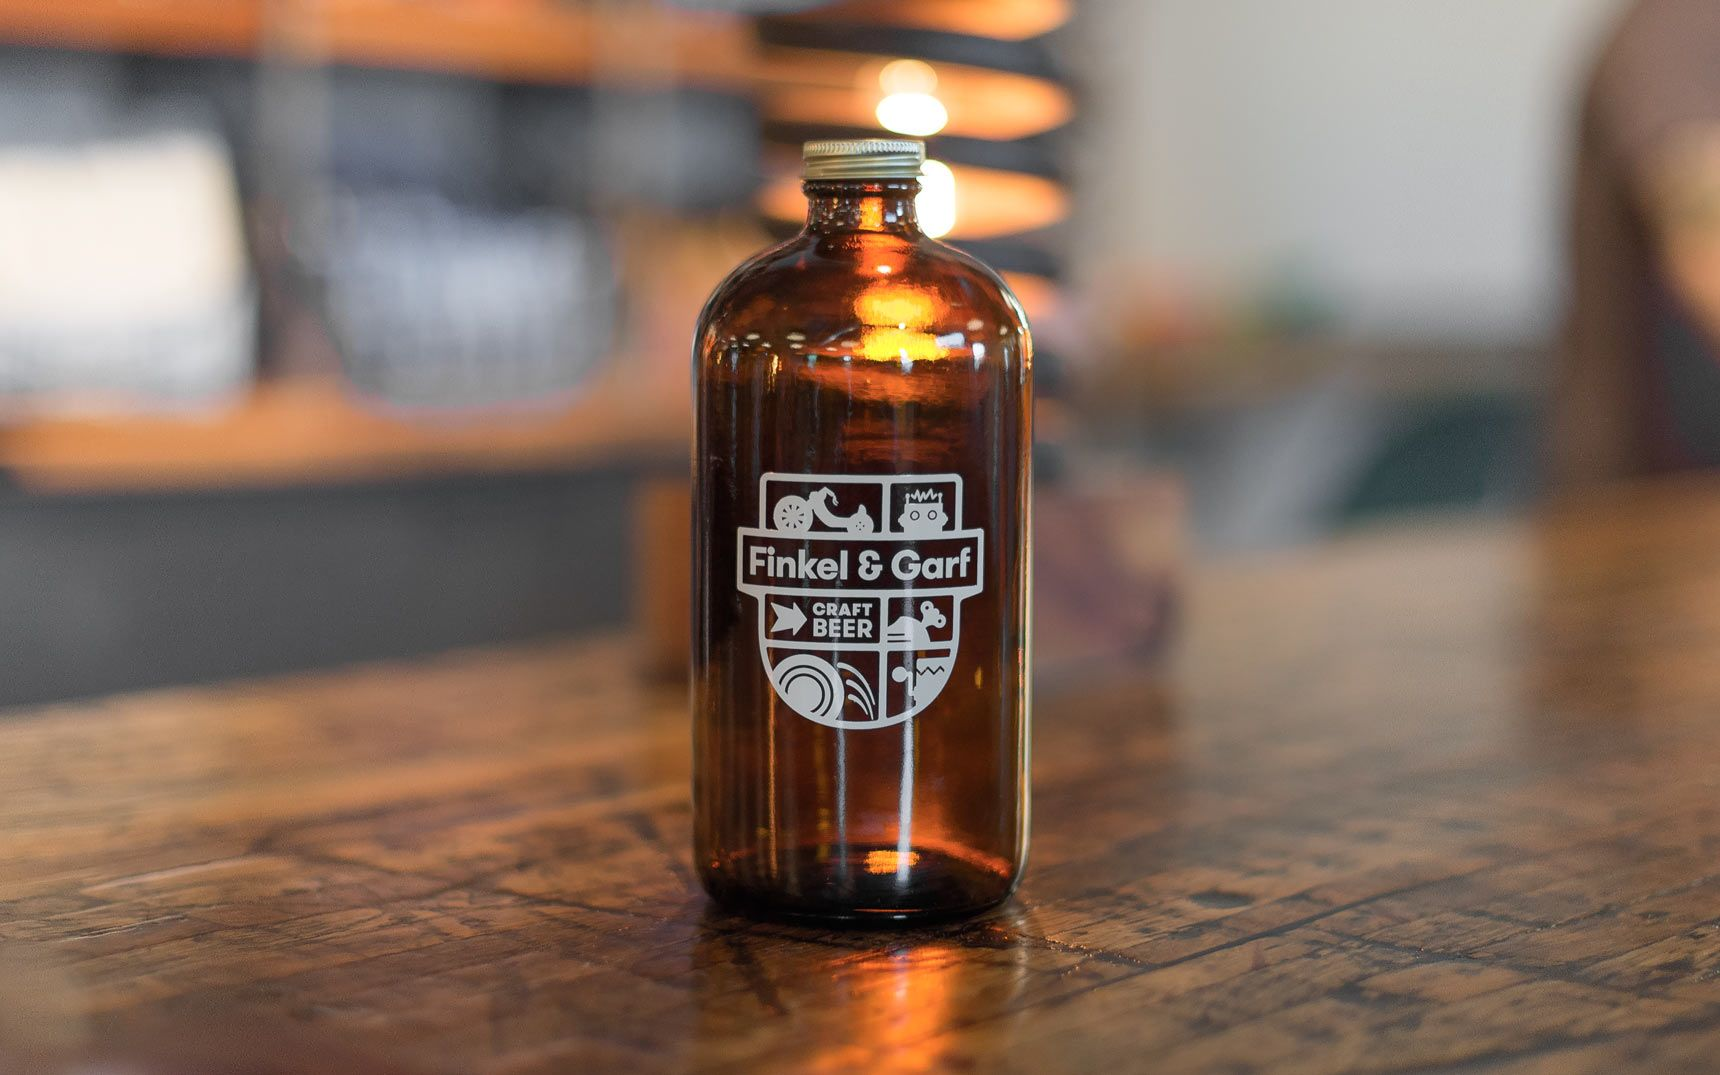 Finkel & Garf Growler Bottle design, Craft beer, Beer